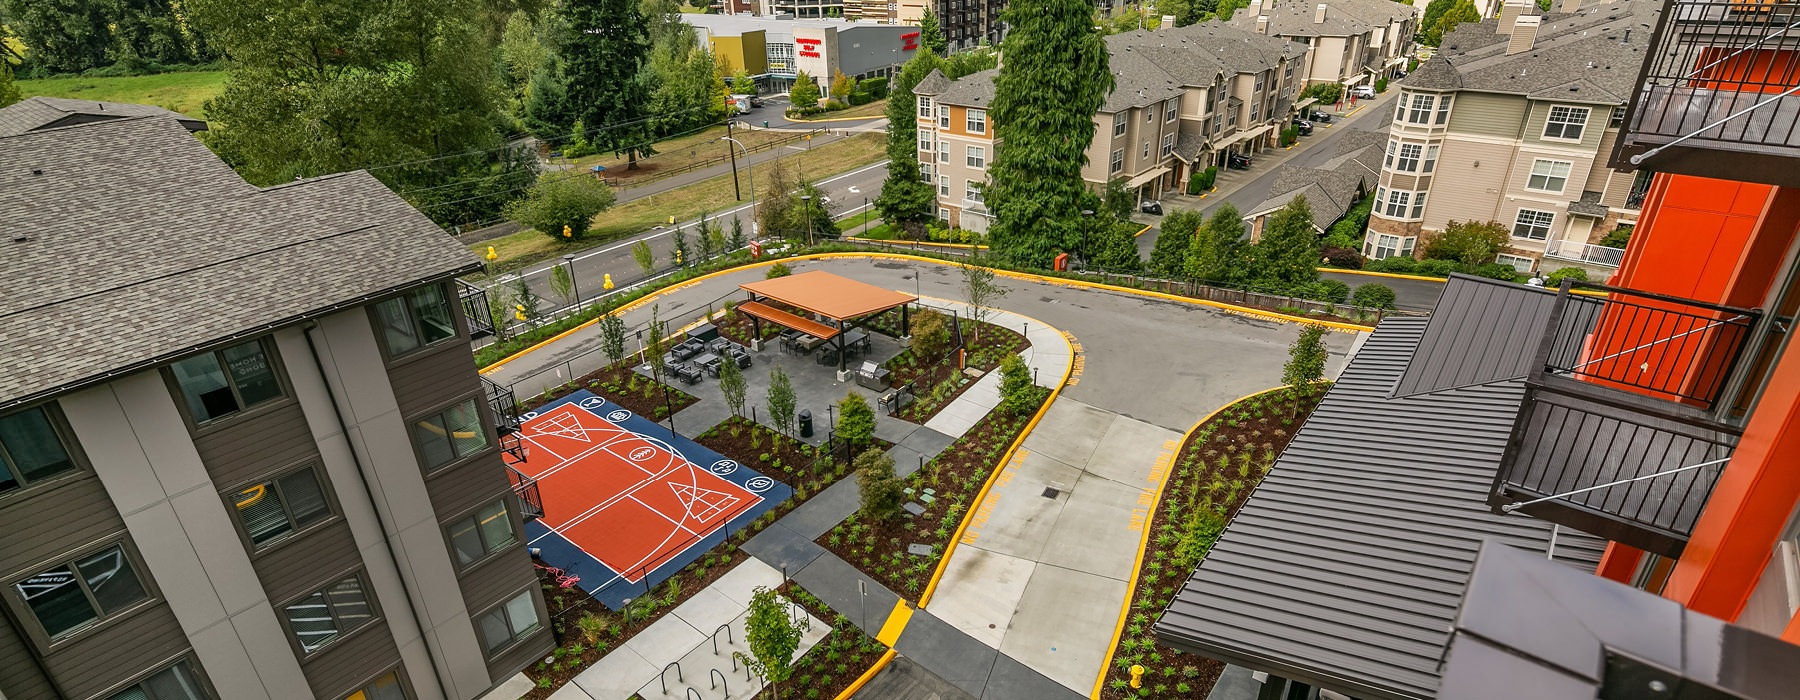 aerial view of sports court at The Bond